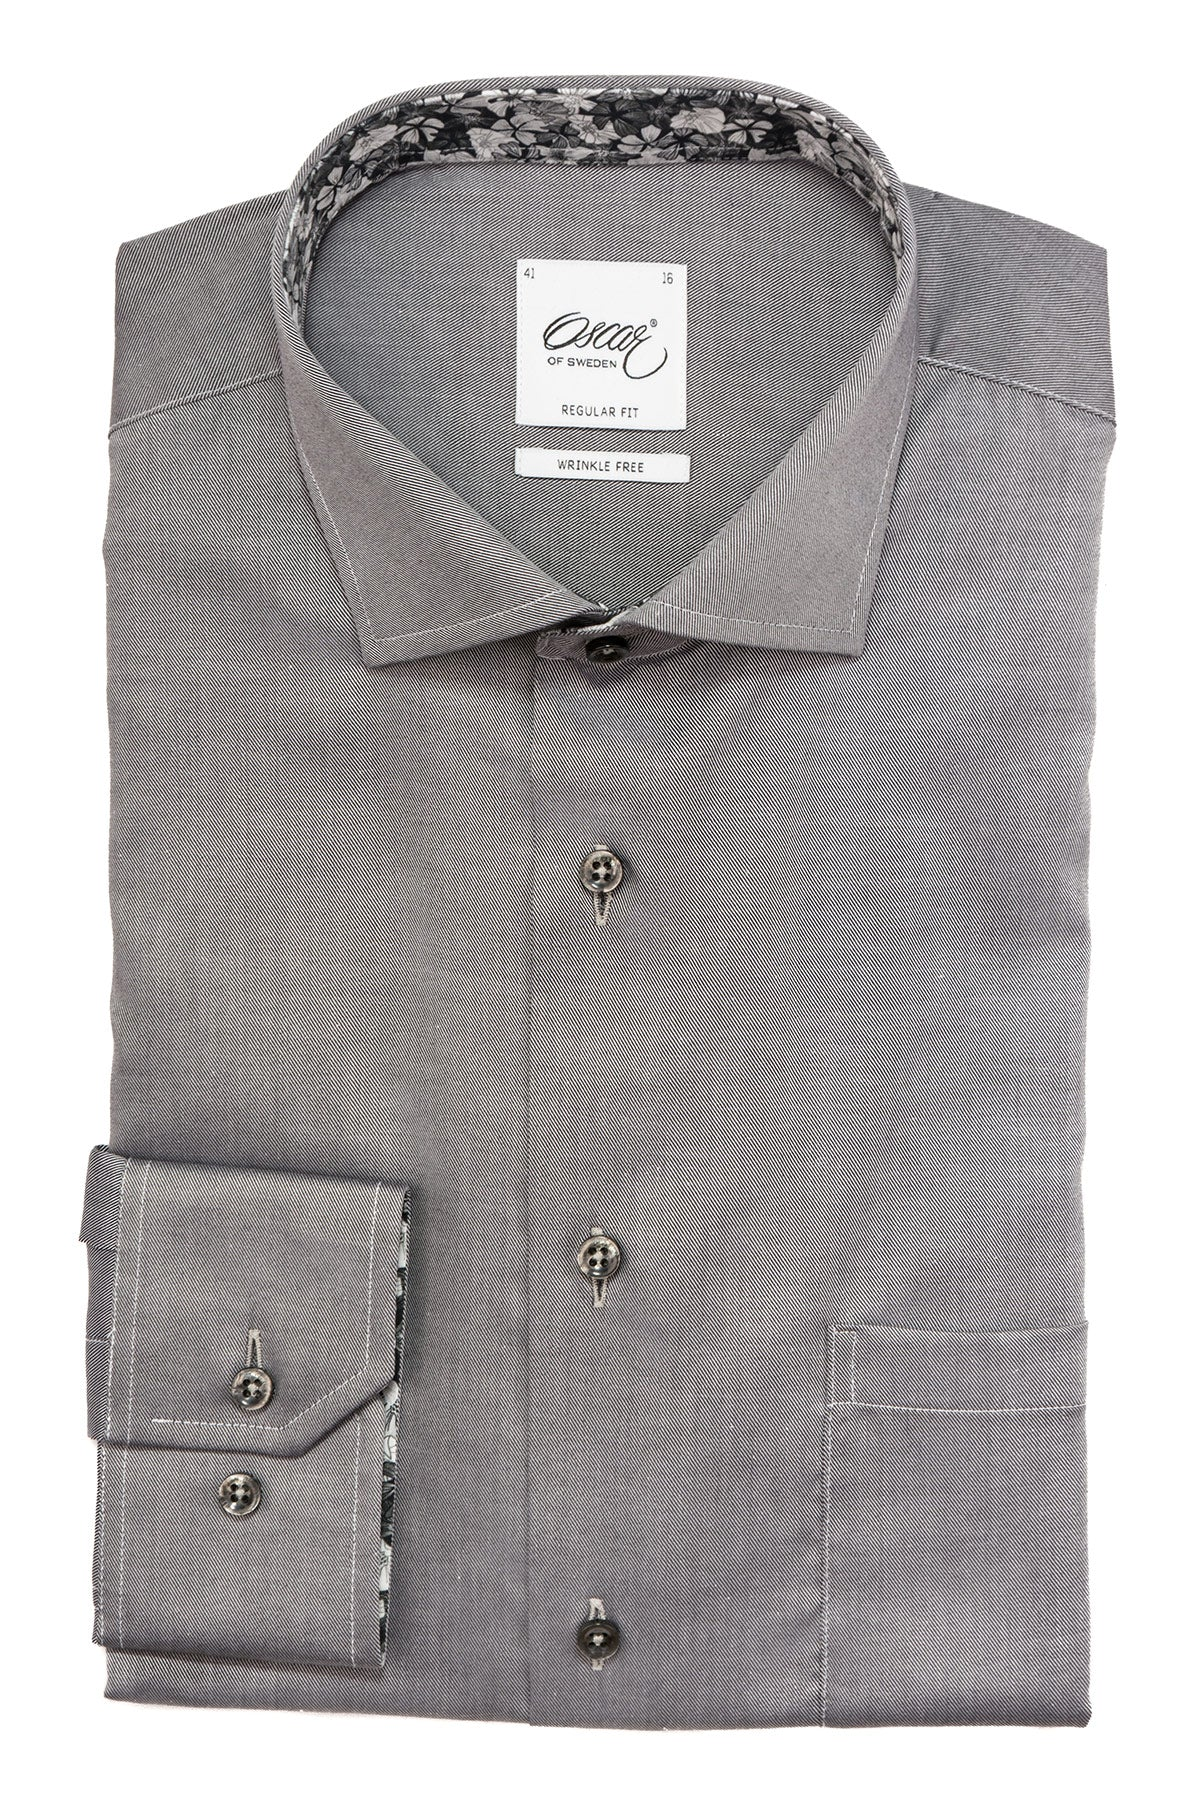 Grey regular fit shirt with contrast details